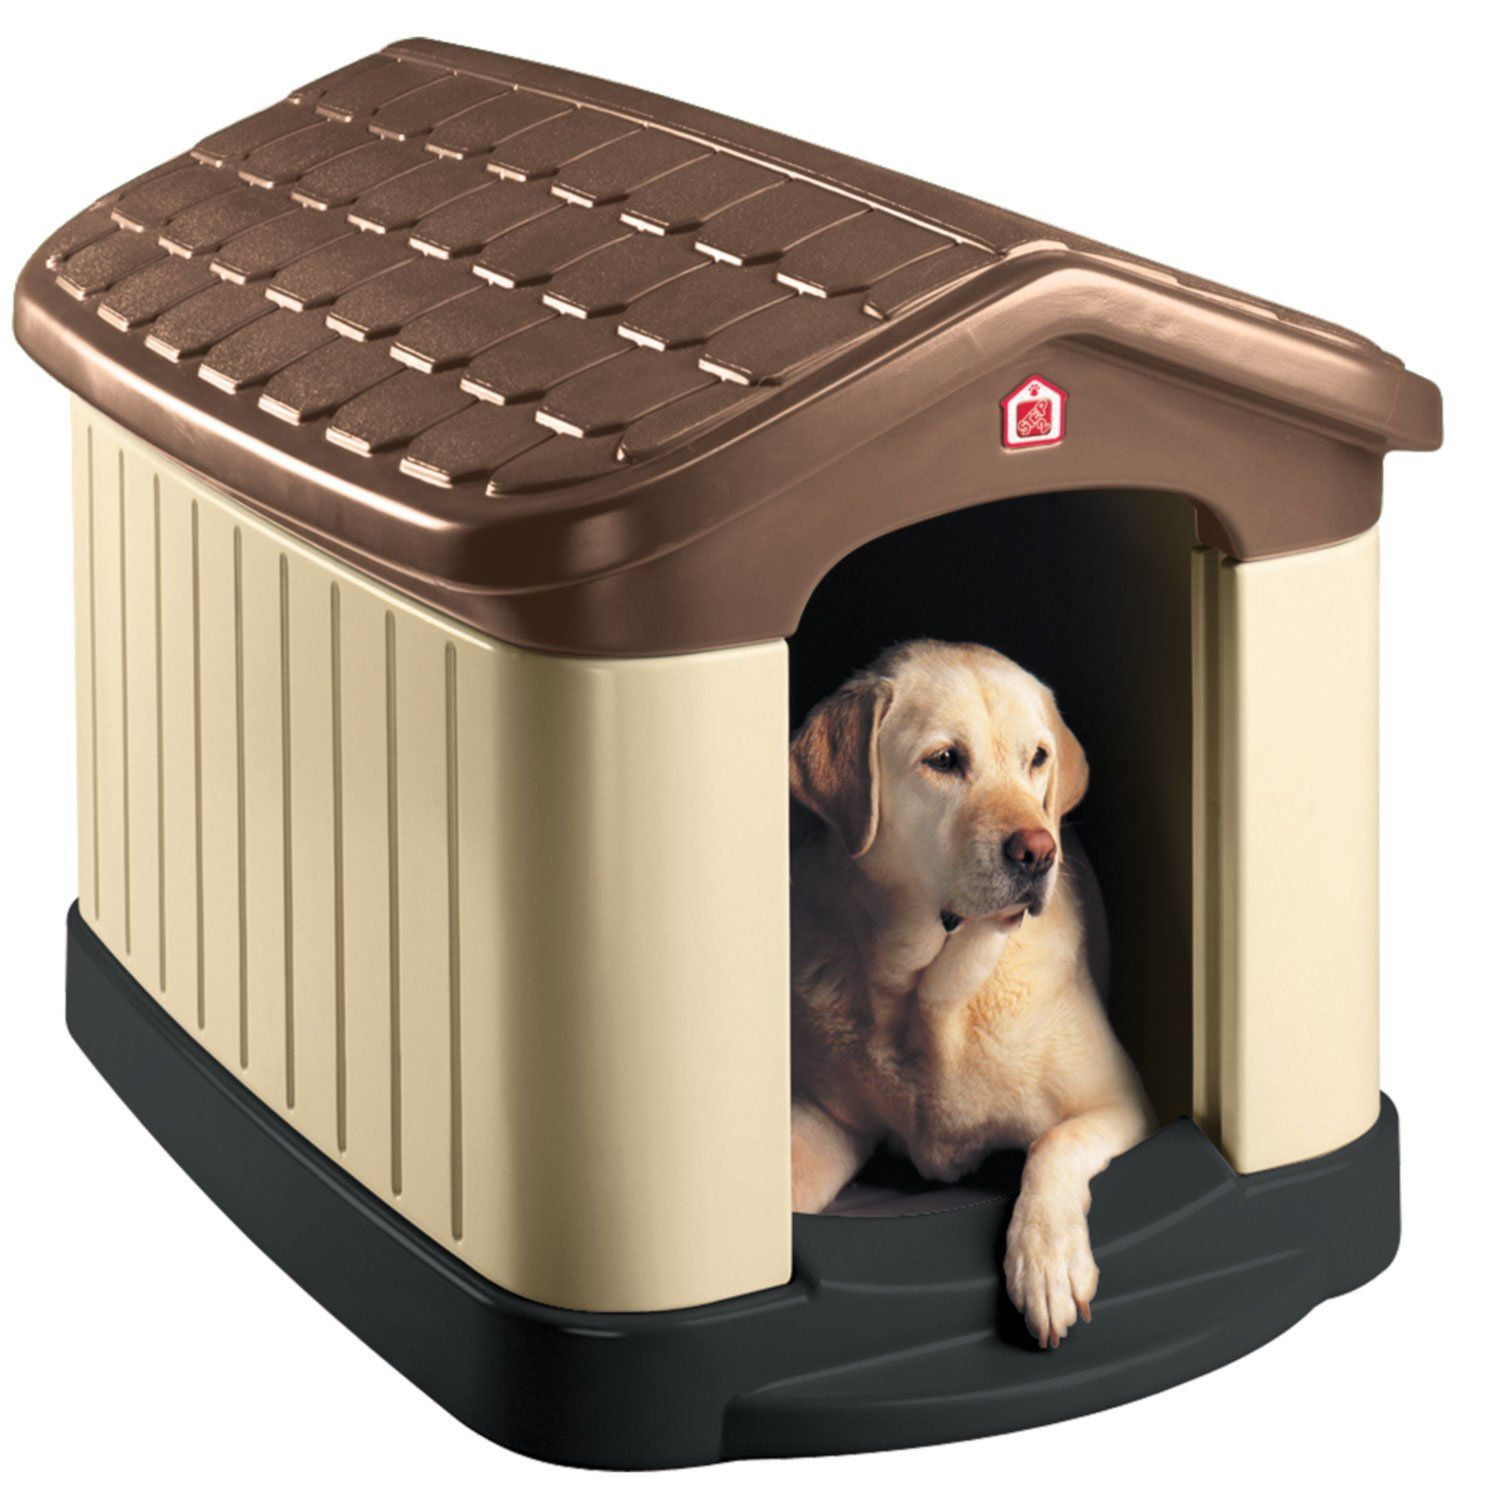 Our Pet S Tuff N Rugged Dog House Large Plastic Dog House Large Dog House Insulated Dog House